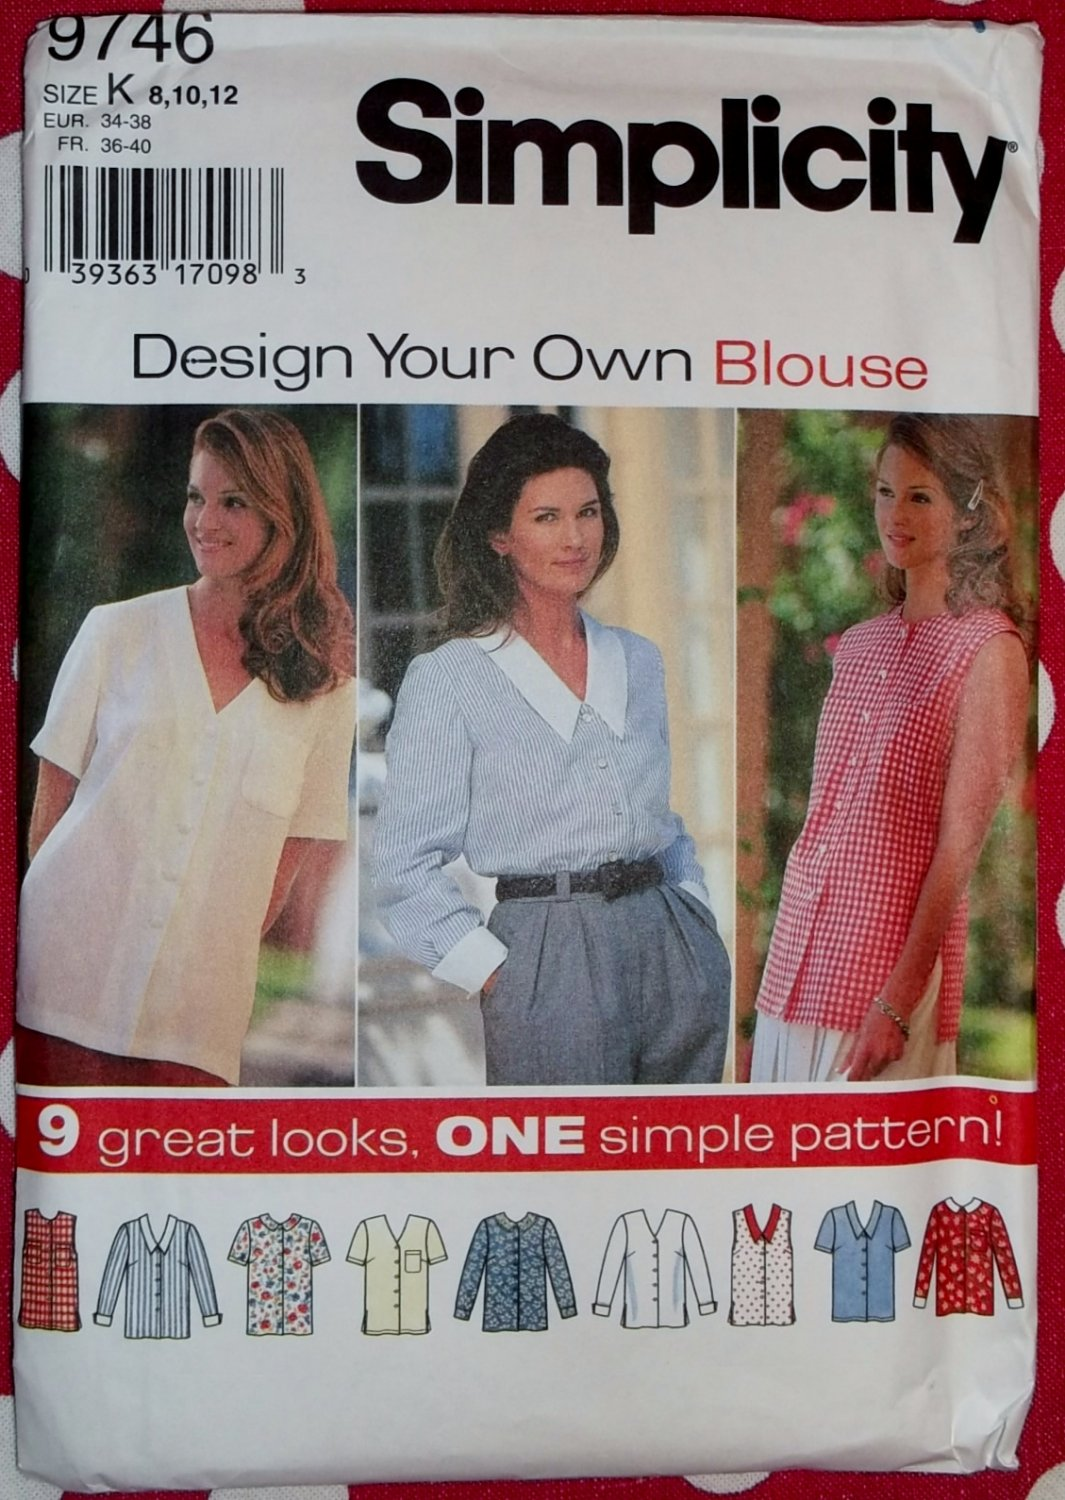 Simplicity 9746 Pattern,  Misses' Blouses,  9 Great Looks, Sizes 8, 10, 12, Uncut